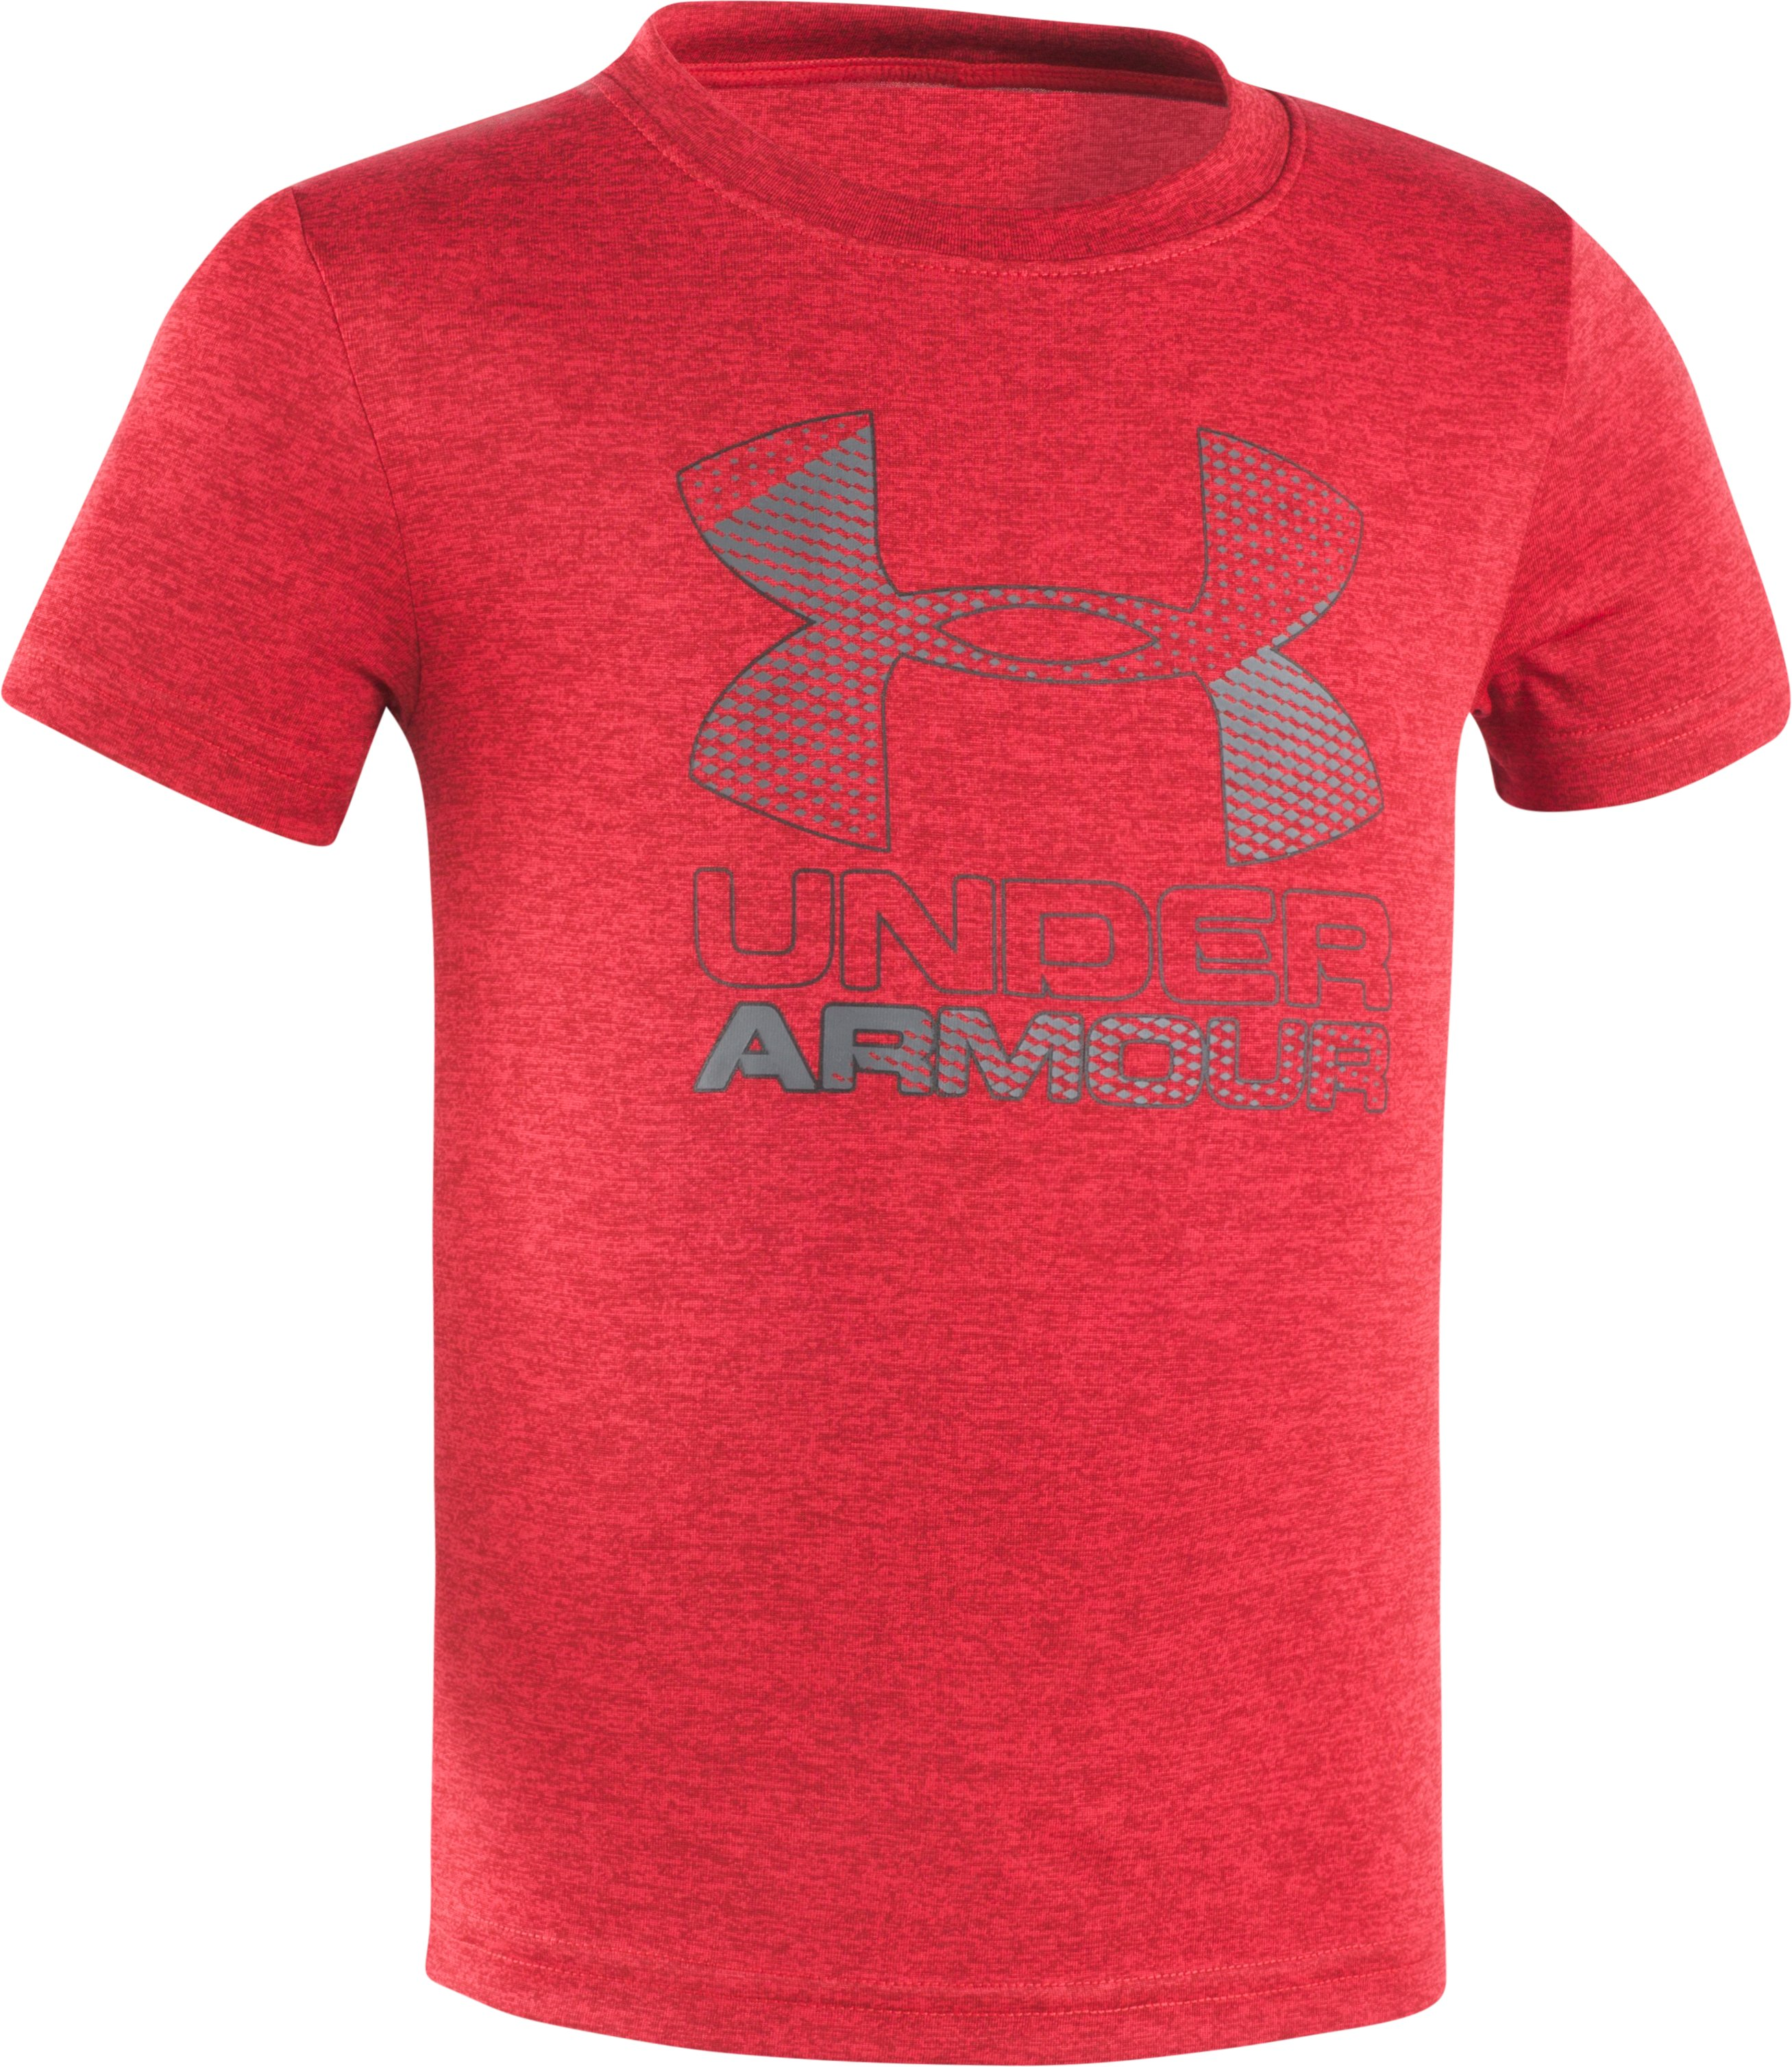 Boys' Toddler UA Big Logo Hybrid Short Sleeve Twist T-Shirt, Red, Laydown